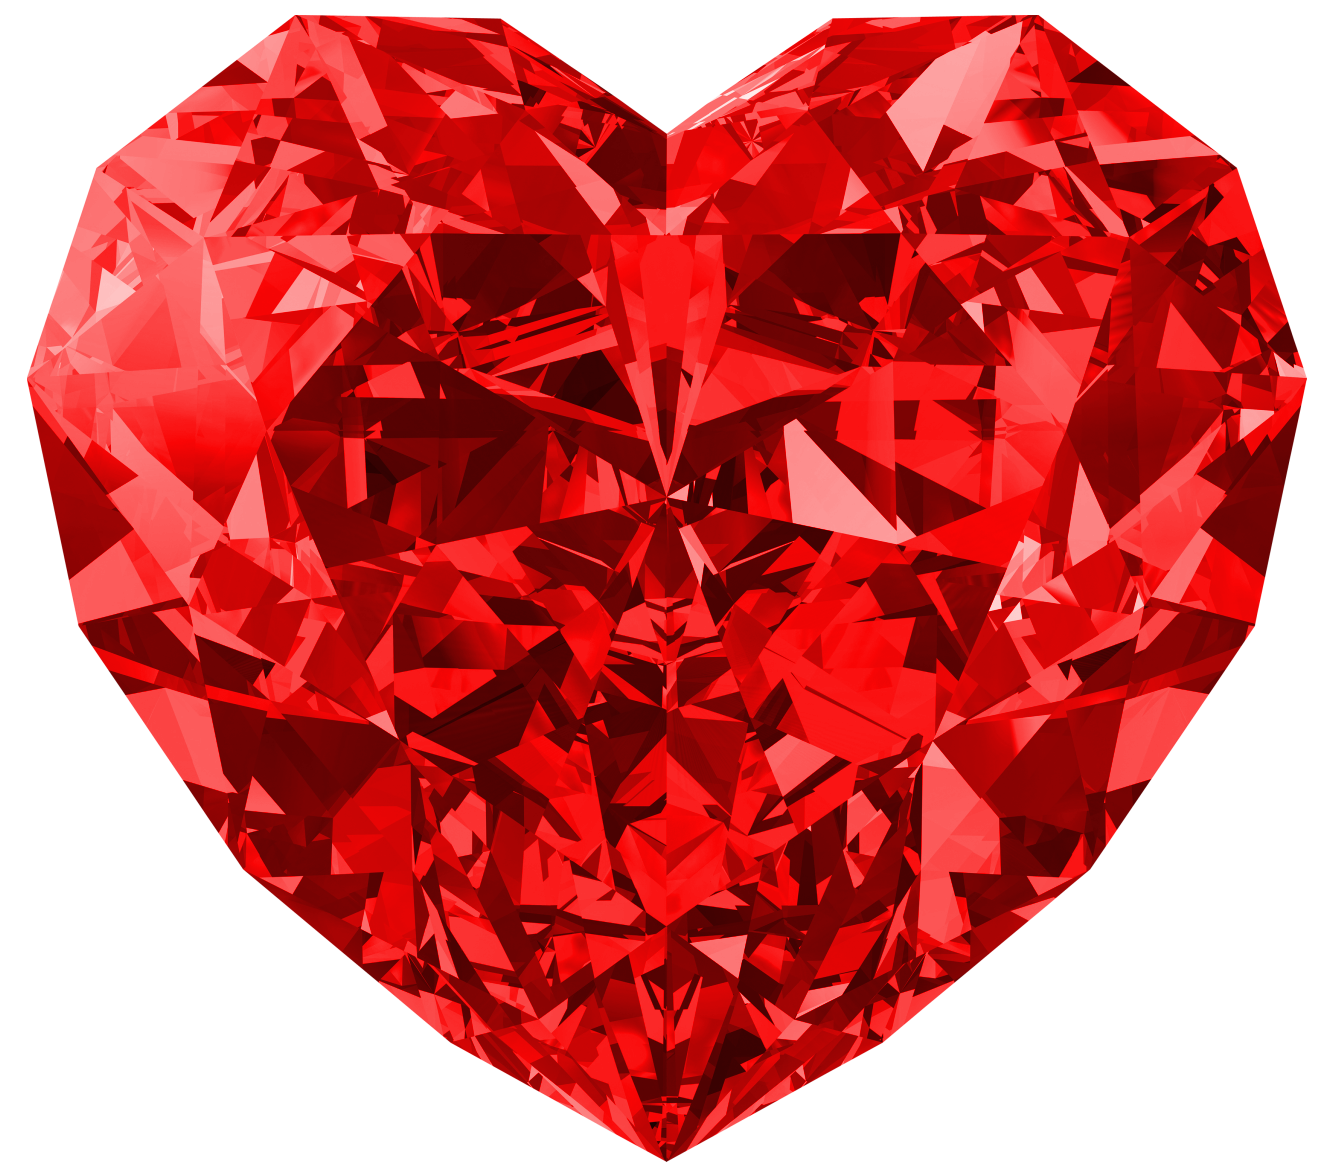 Heart, png diamond. Red heart large picture